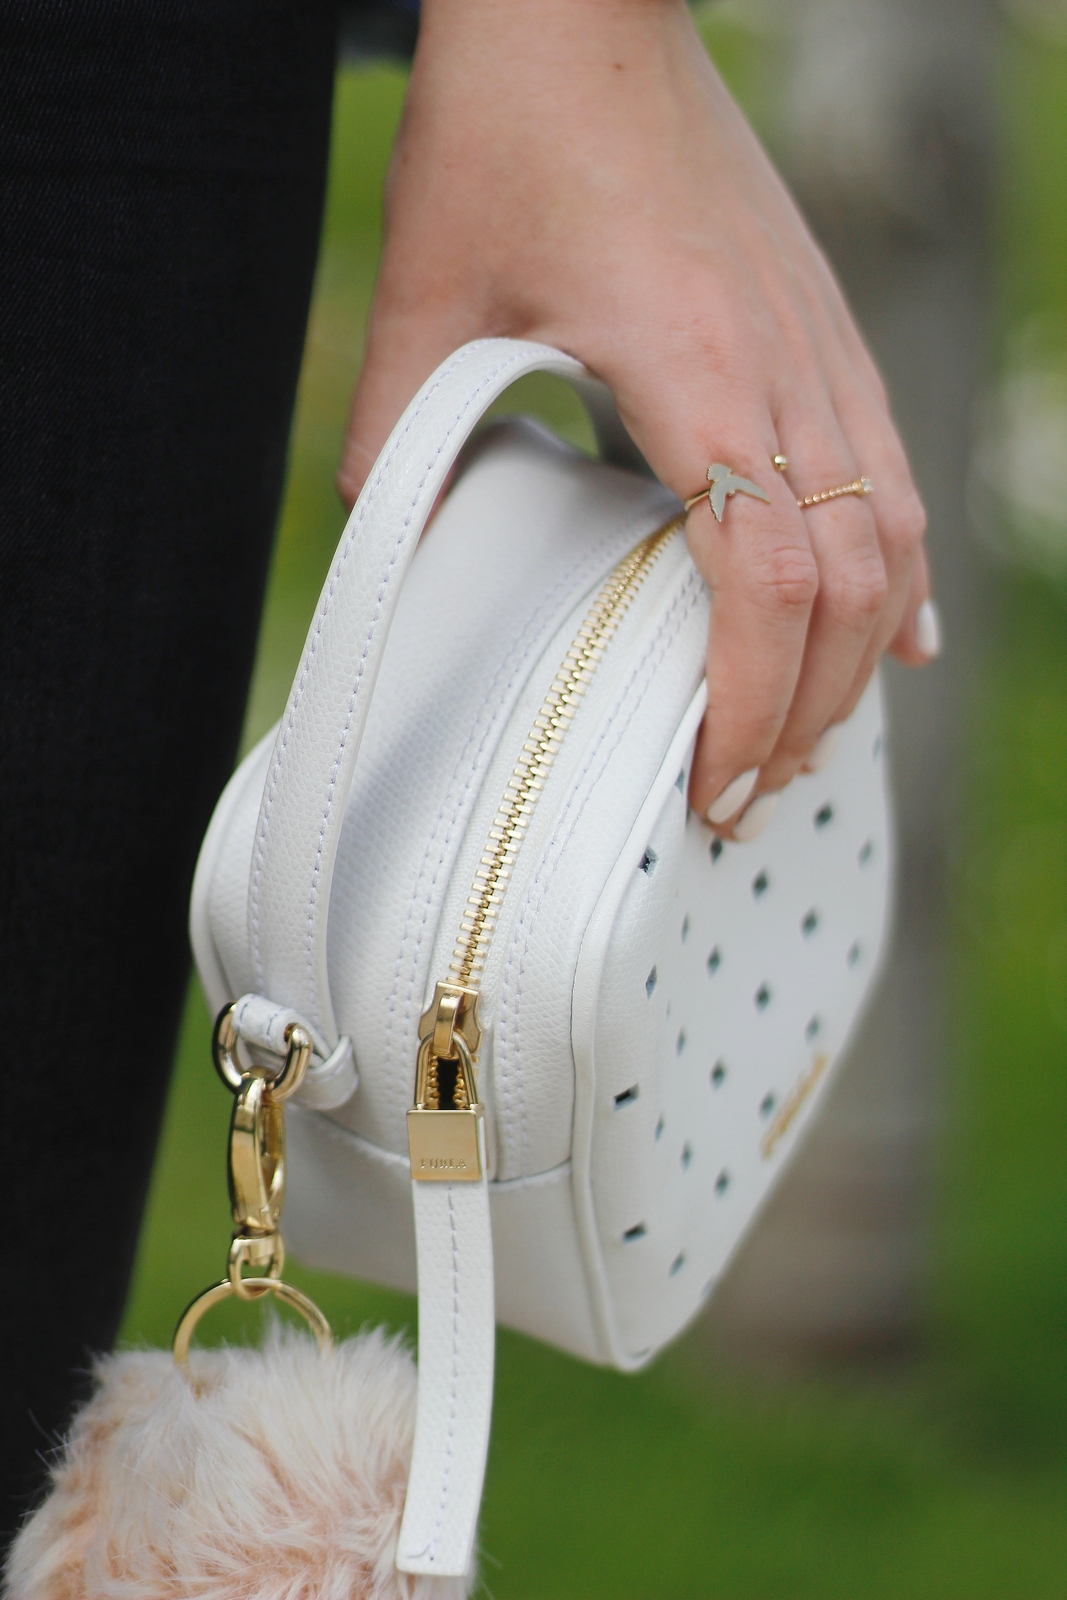 Blog mode femme Paris - Du style, Madame - furla sac